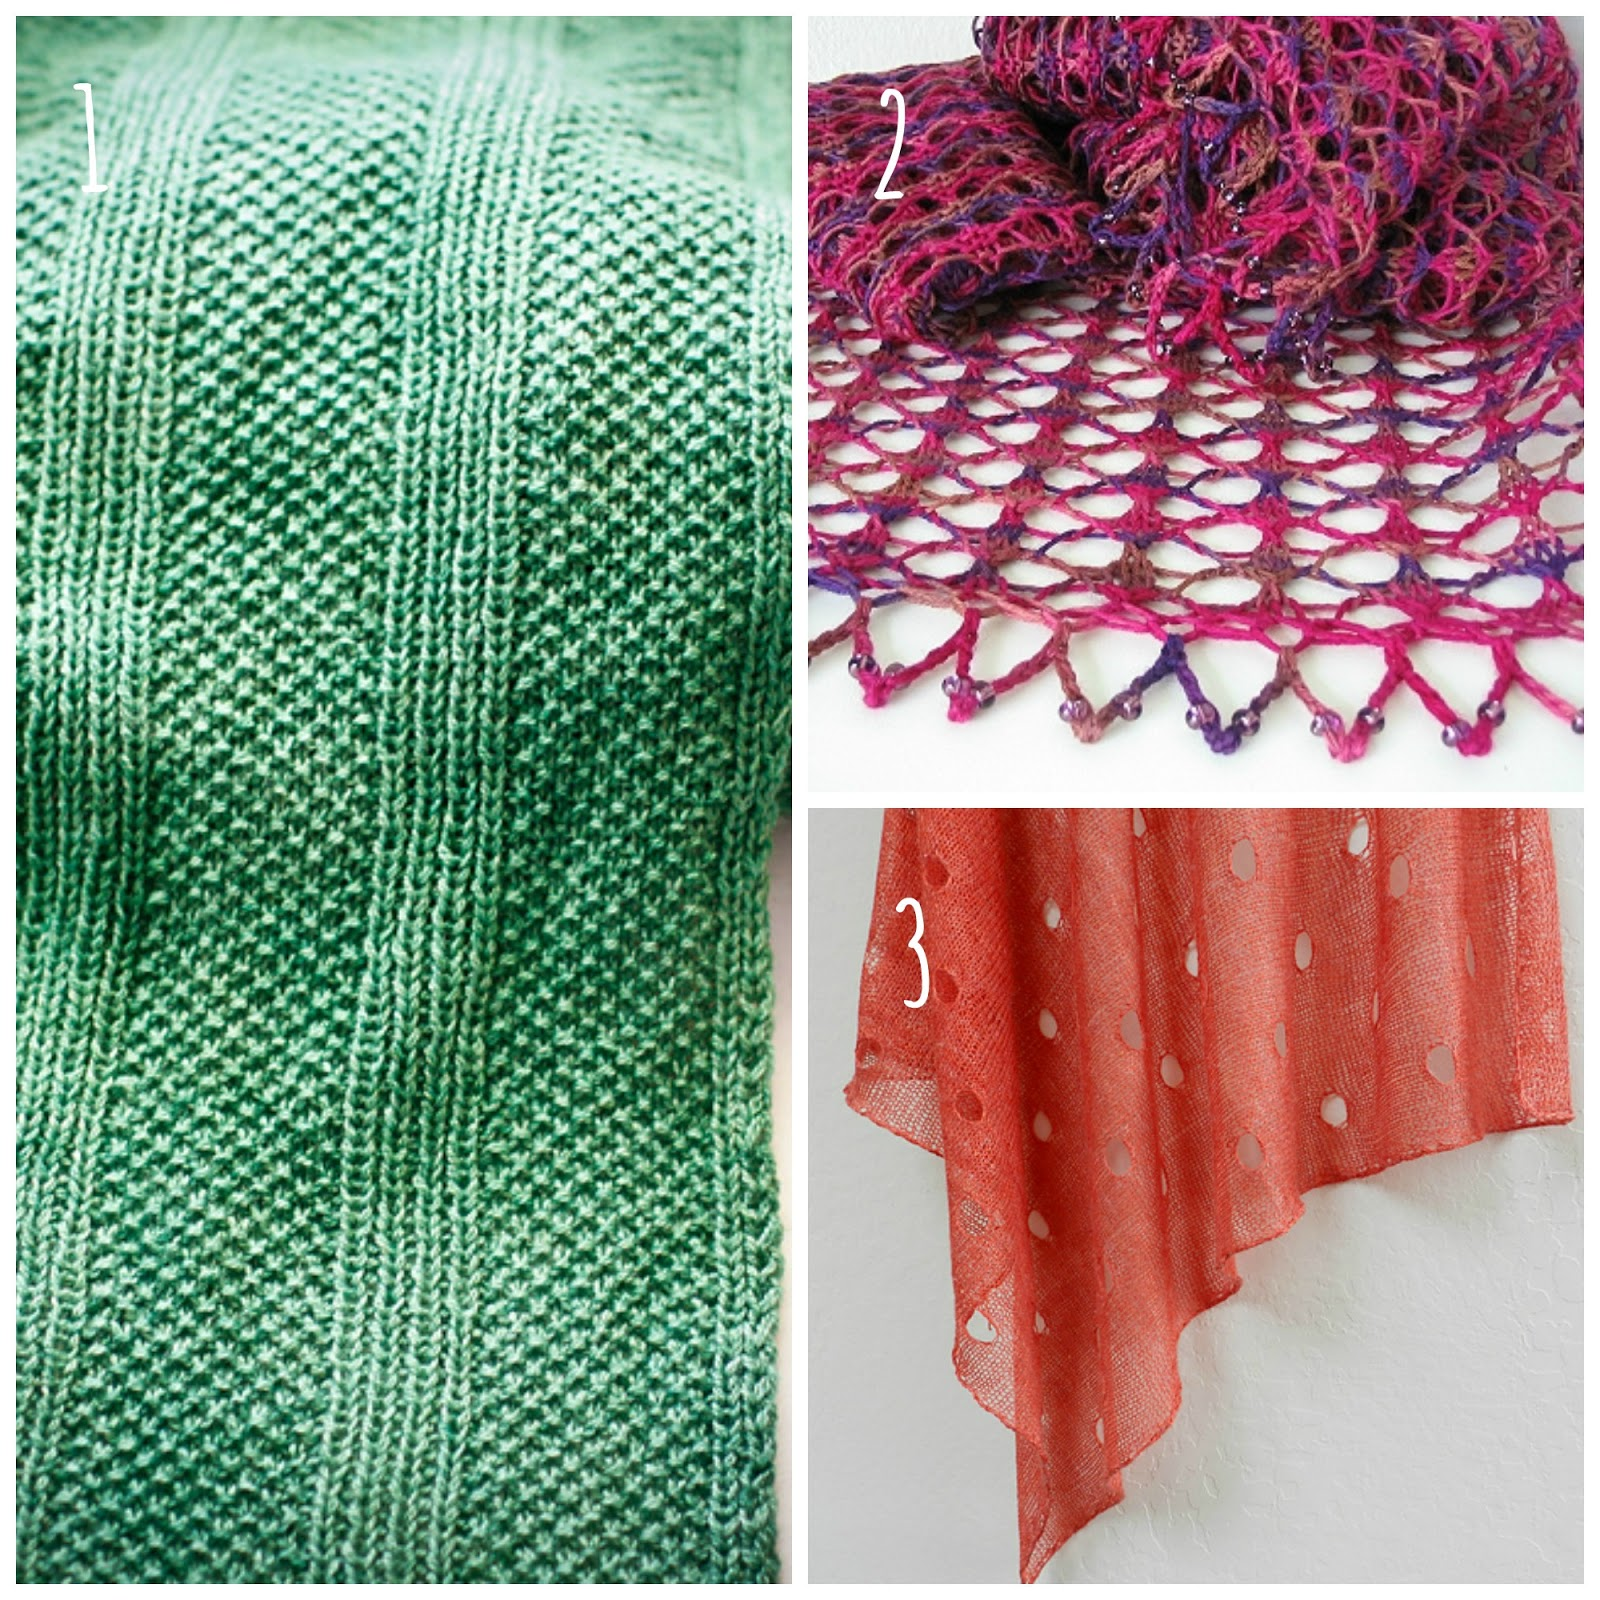 Abso-knitting-lutely!: Simple Knitting Patterns for Hand-dyed Lace Yarn